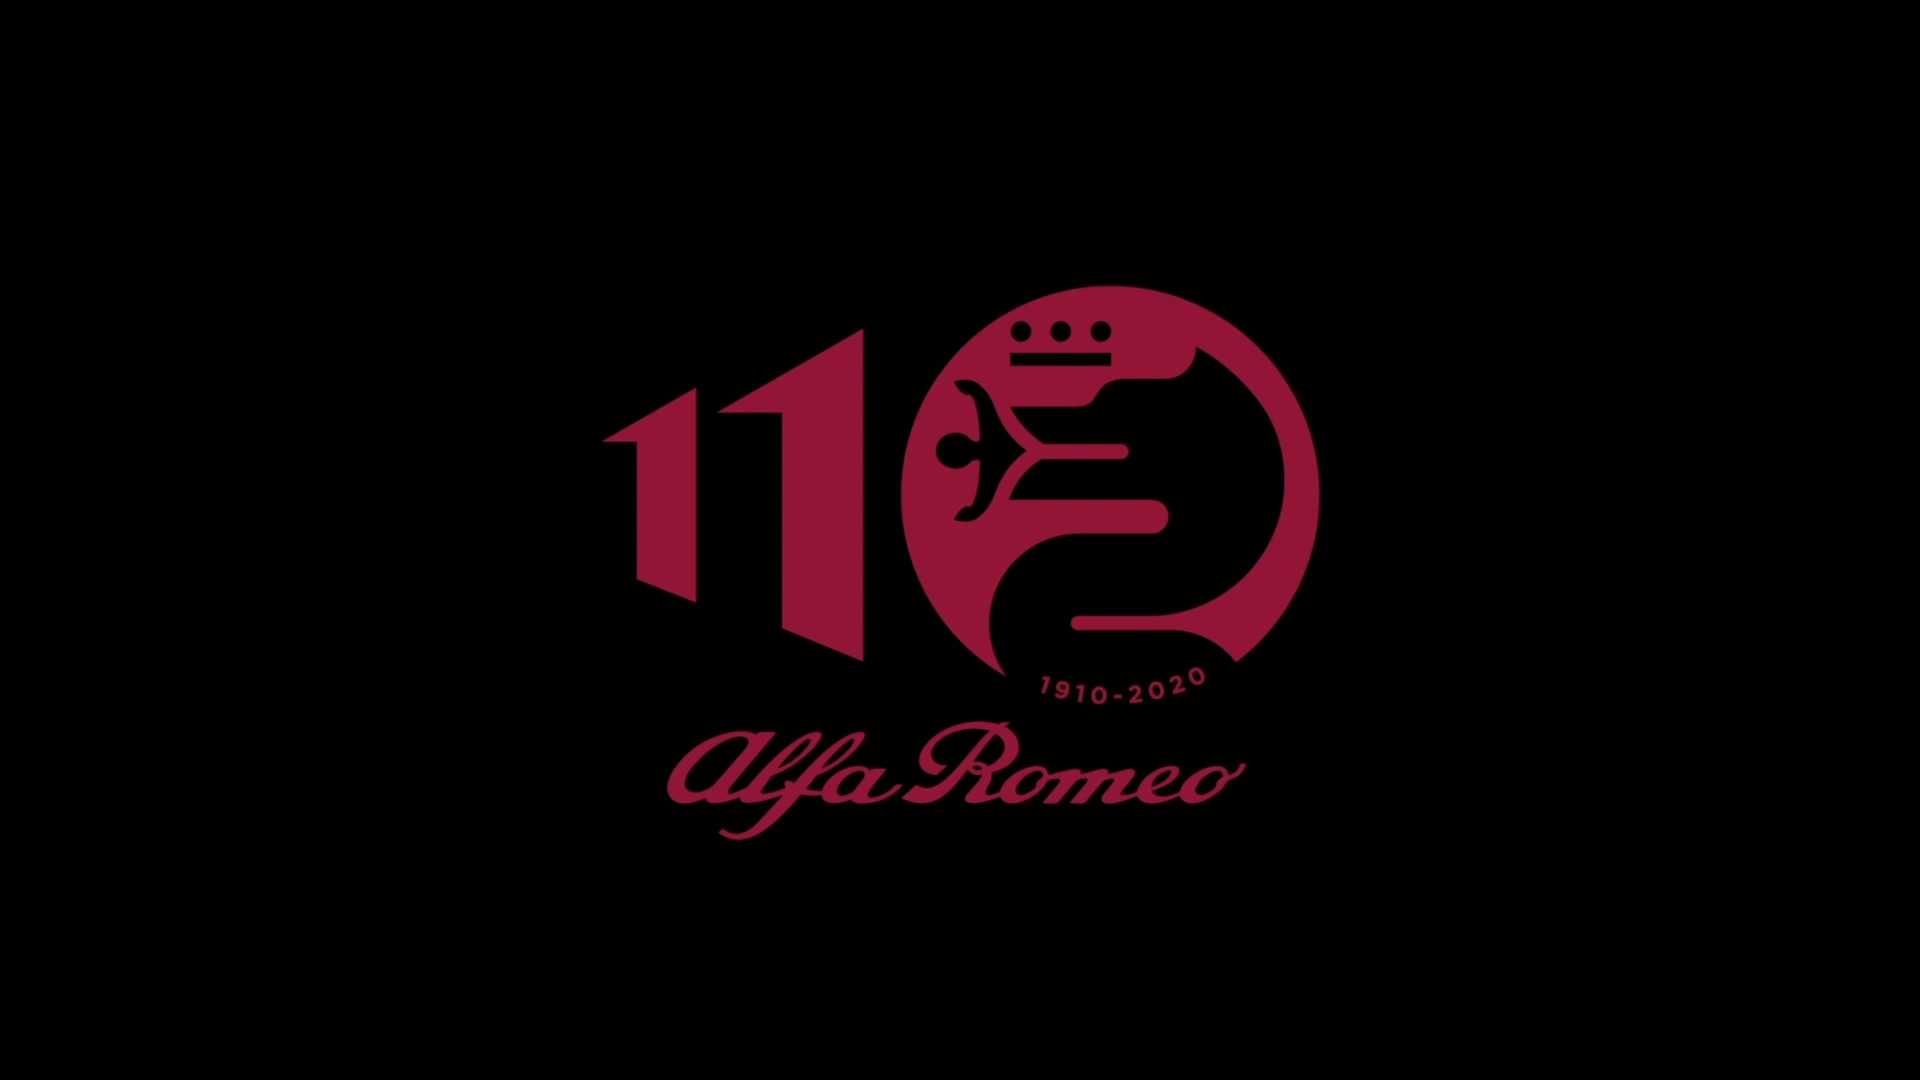 110th Anniversary of Alfa Romeo - Relive the emotions